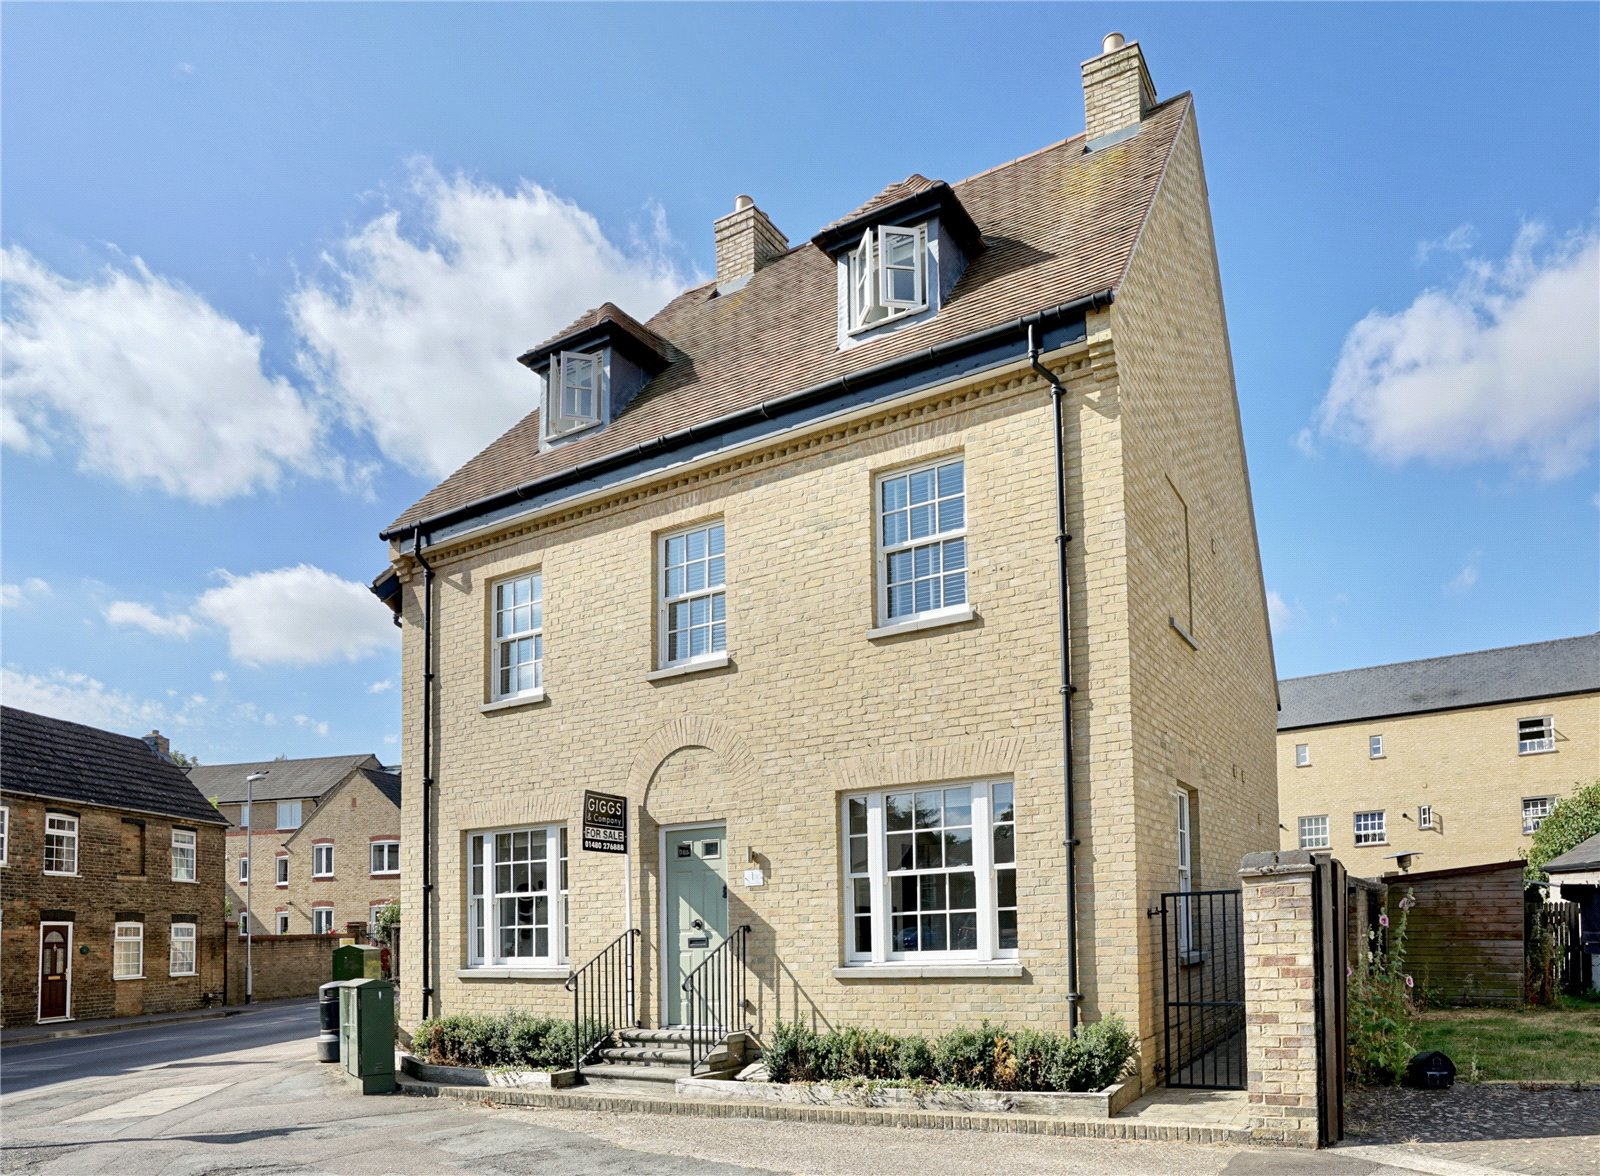 4 bed house for sale in Steam Flour Mill, Church Street, PE19